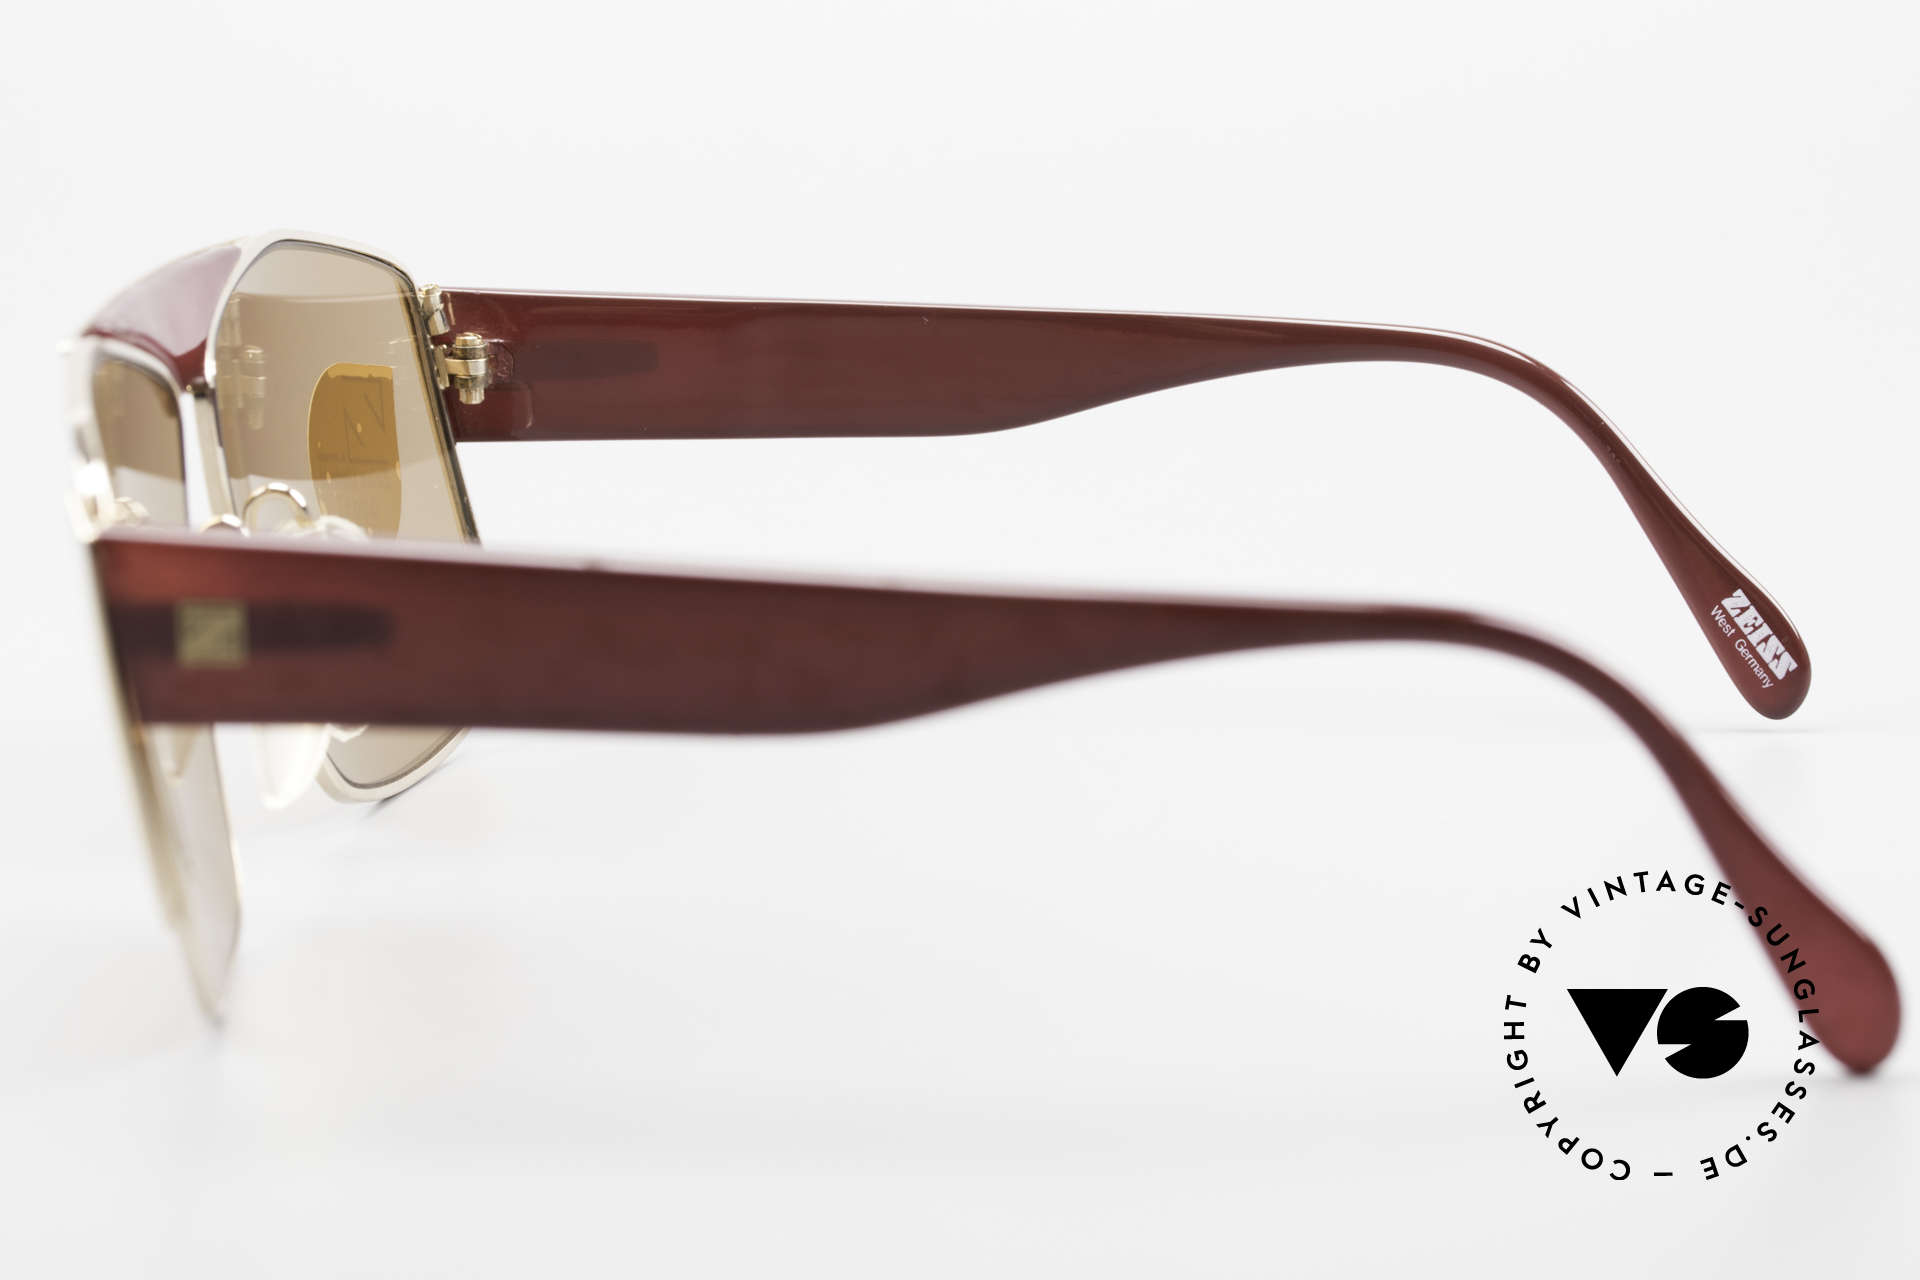 Zeiss 9302 Old 80's West Germany Shades, Size: medium, Made for Men